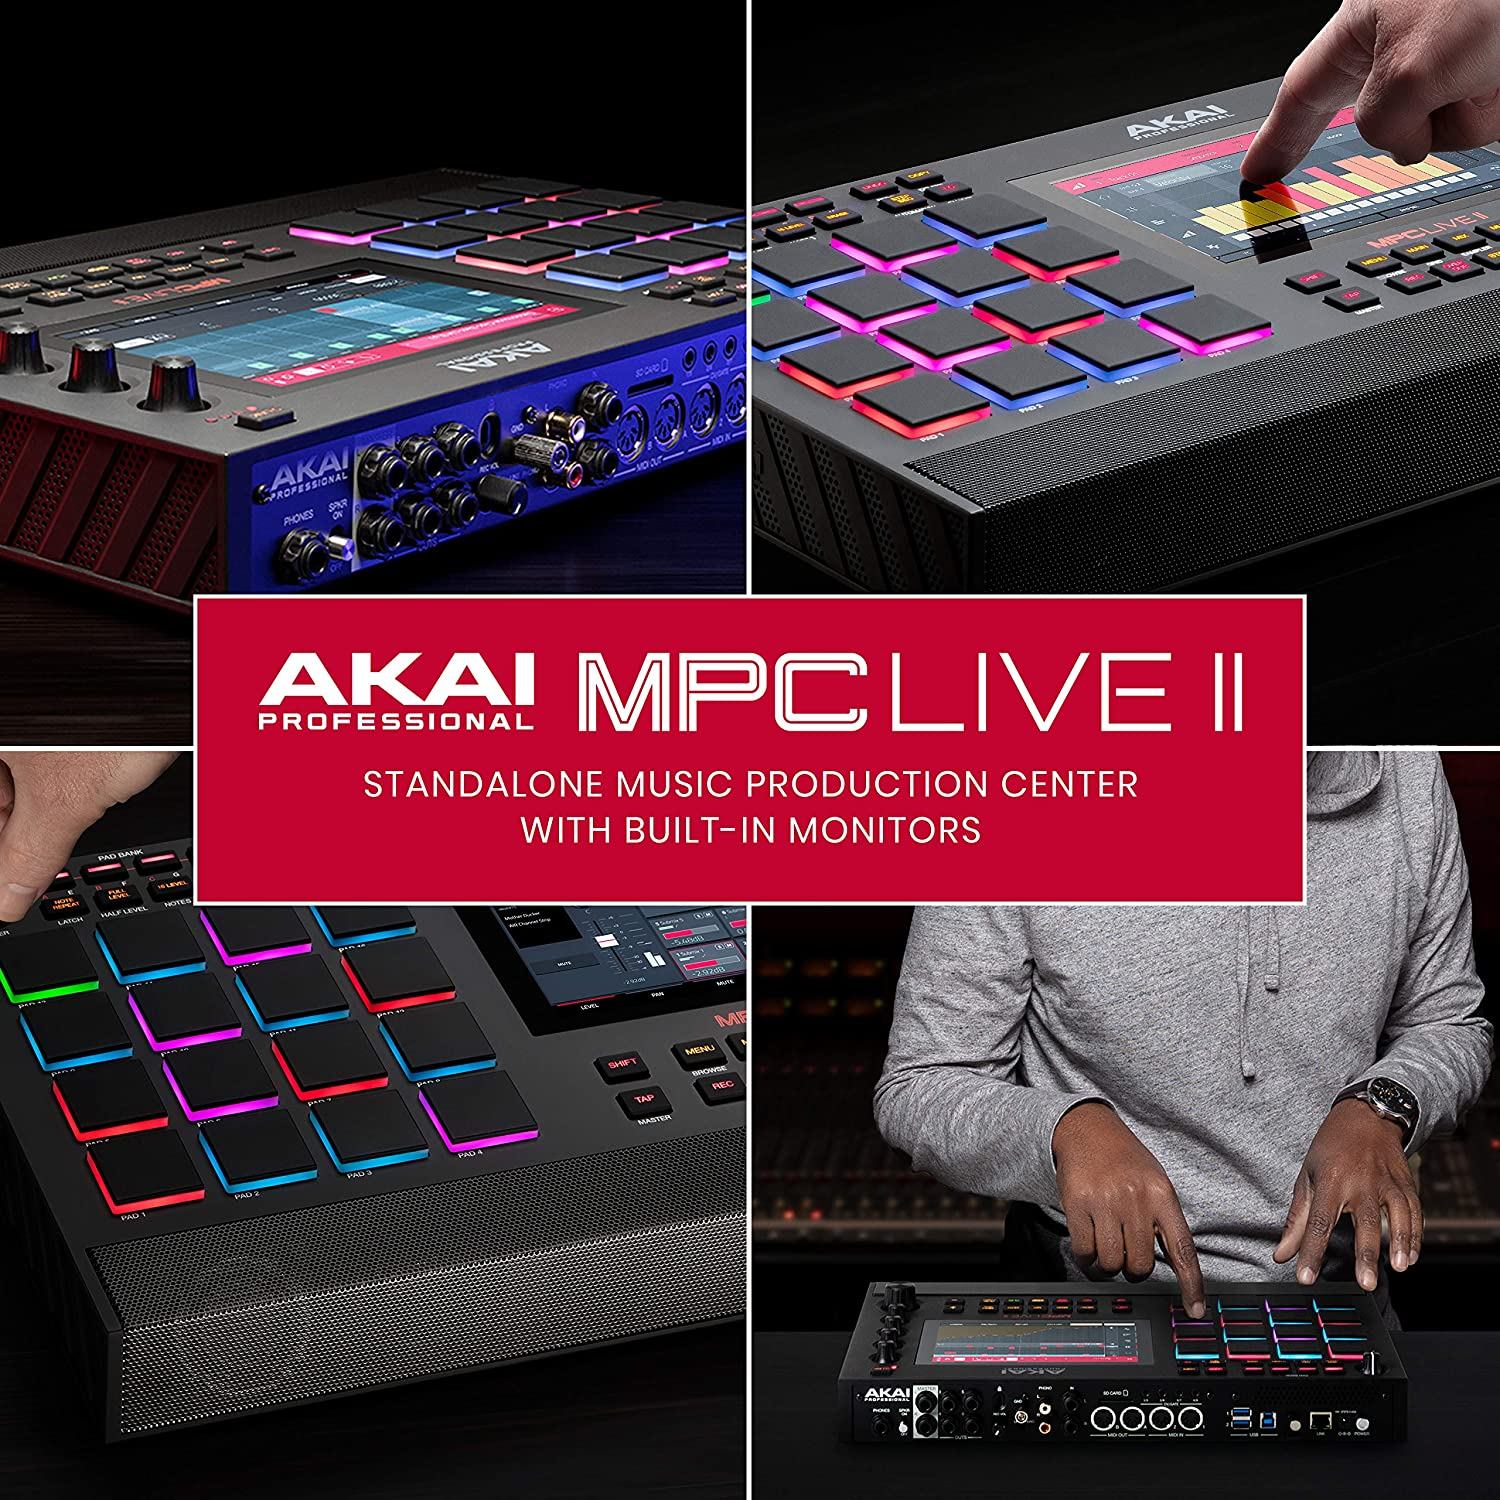 АKAI Professional MPC Live II – Battery Powered Drum Machine and Sampler With Built in Speakers, Beat Pads, Synth Engines and Touch Display